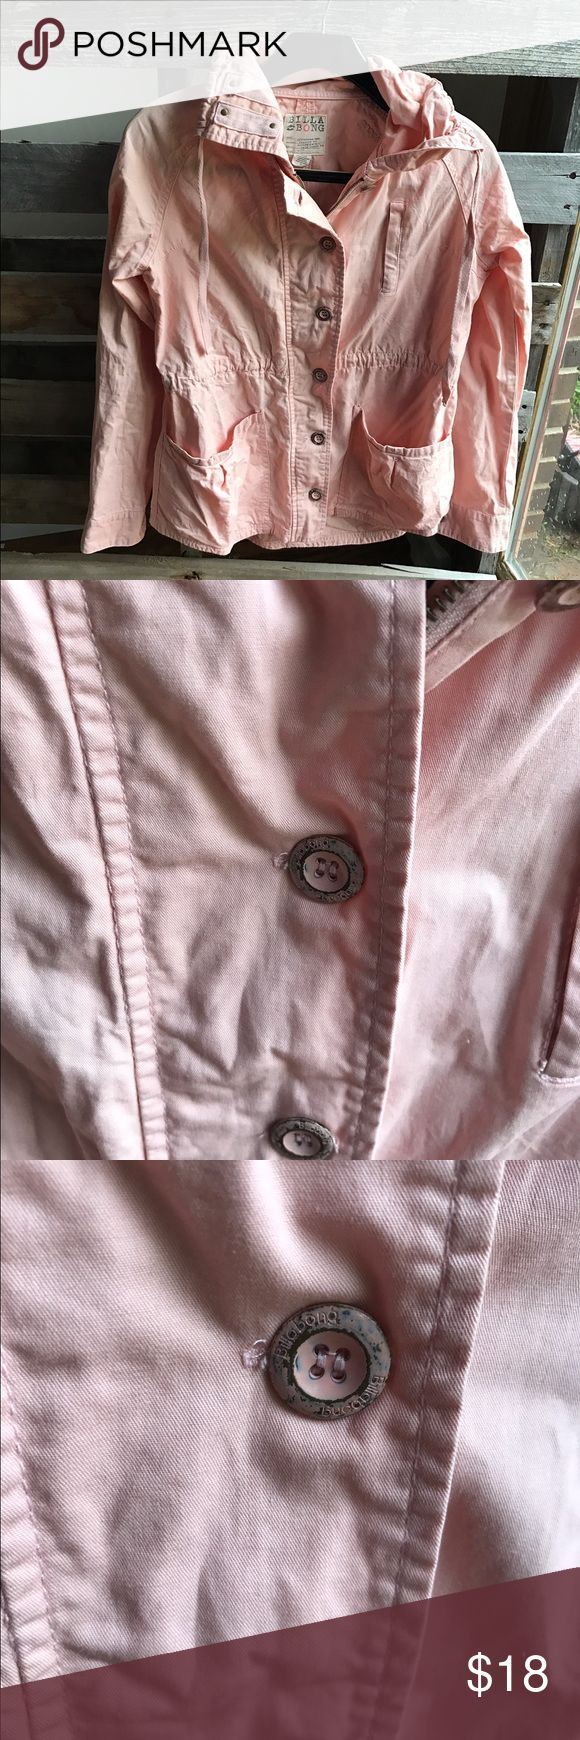 Billabong jacket roll sleeves M GUC Good condition no holes, stains etc.  You can see signs of wear on the buttons. Lots of life left. Smoke and pet free home. Bundle discount 20% Billabong Jackets & Coats